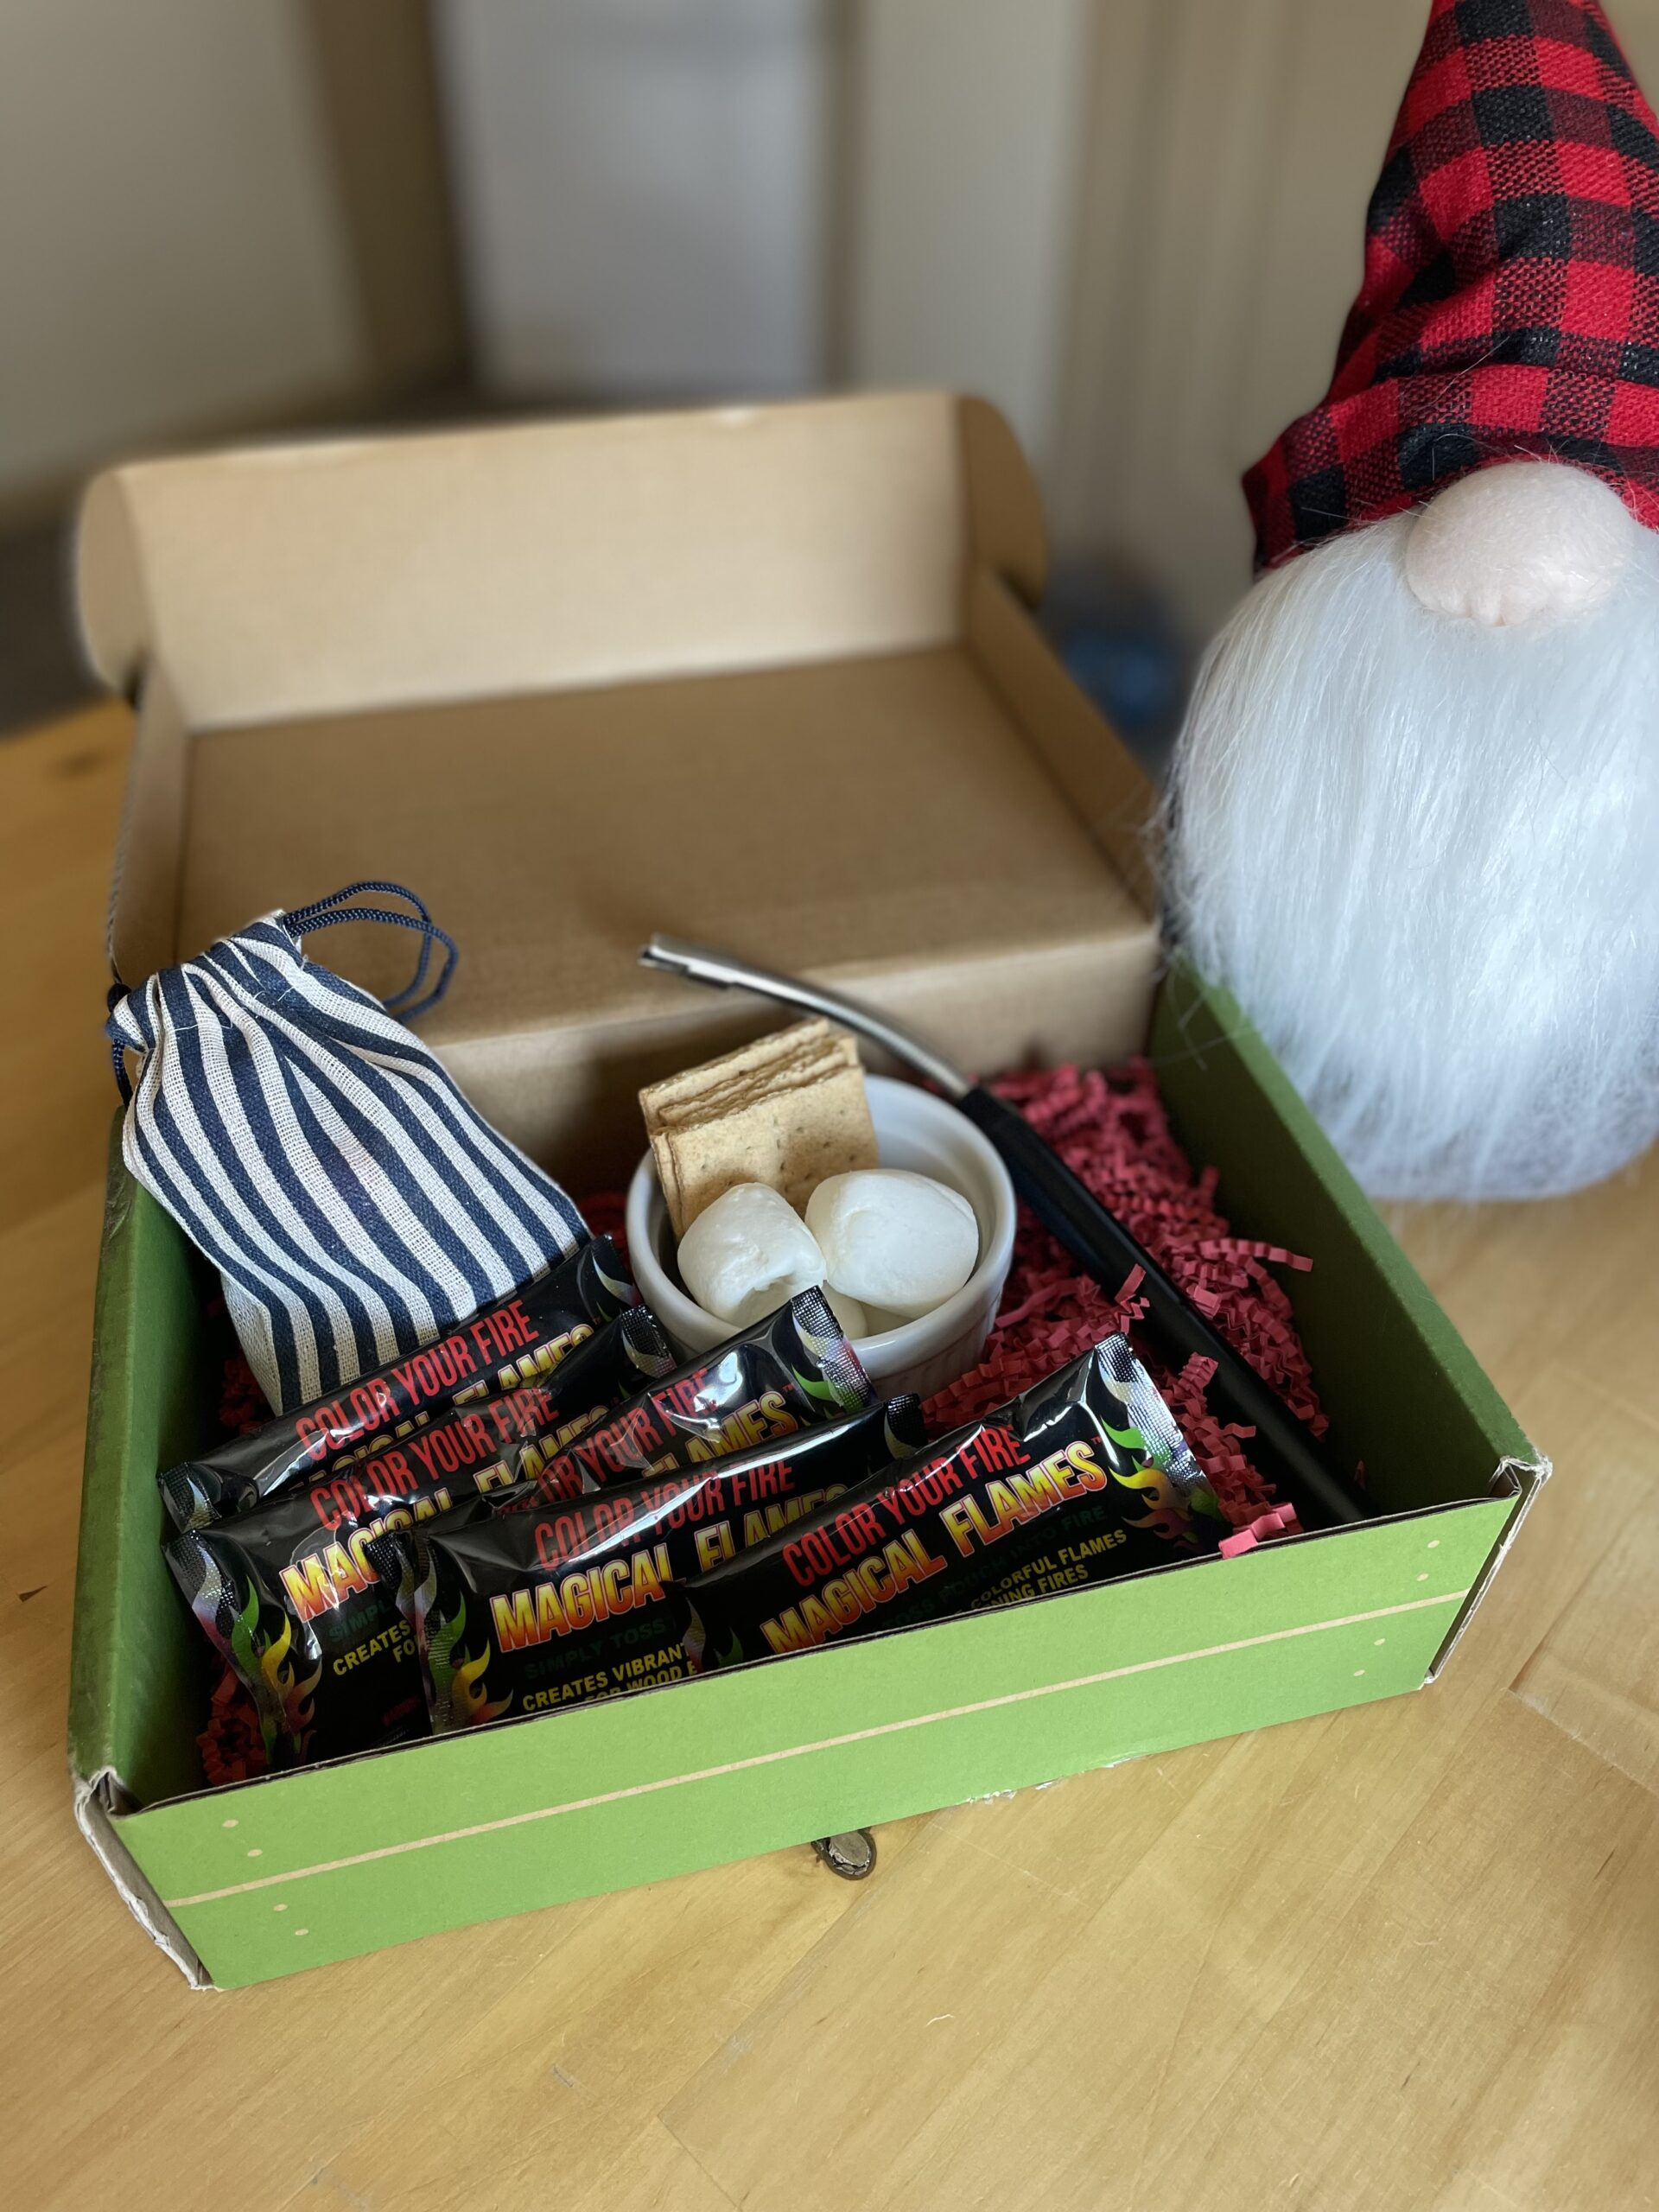 green box with red stuffing, arc fire lighter, treat sack, fire colorant packages, and marshmallows and graham crackers in a little ramekin